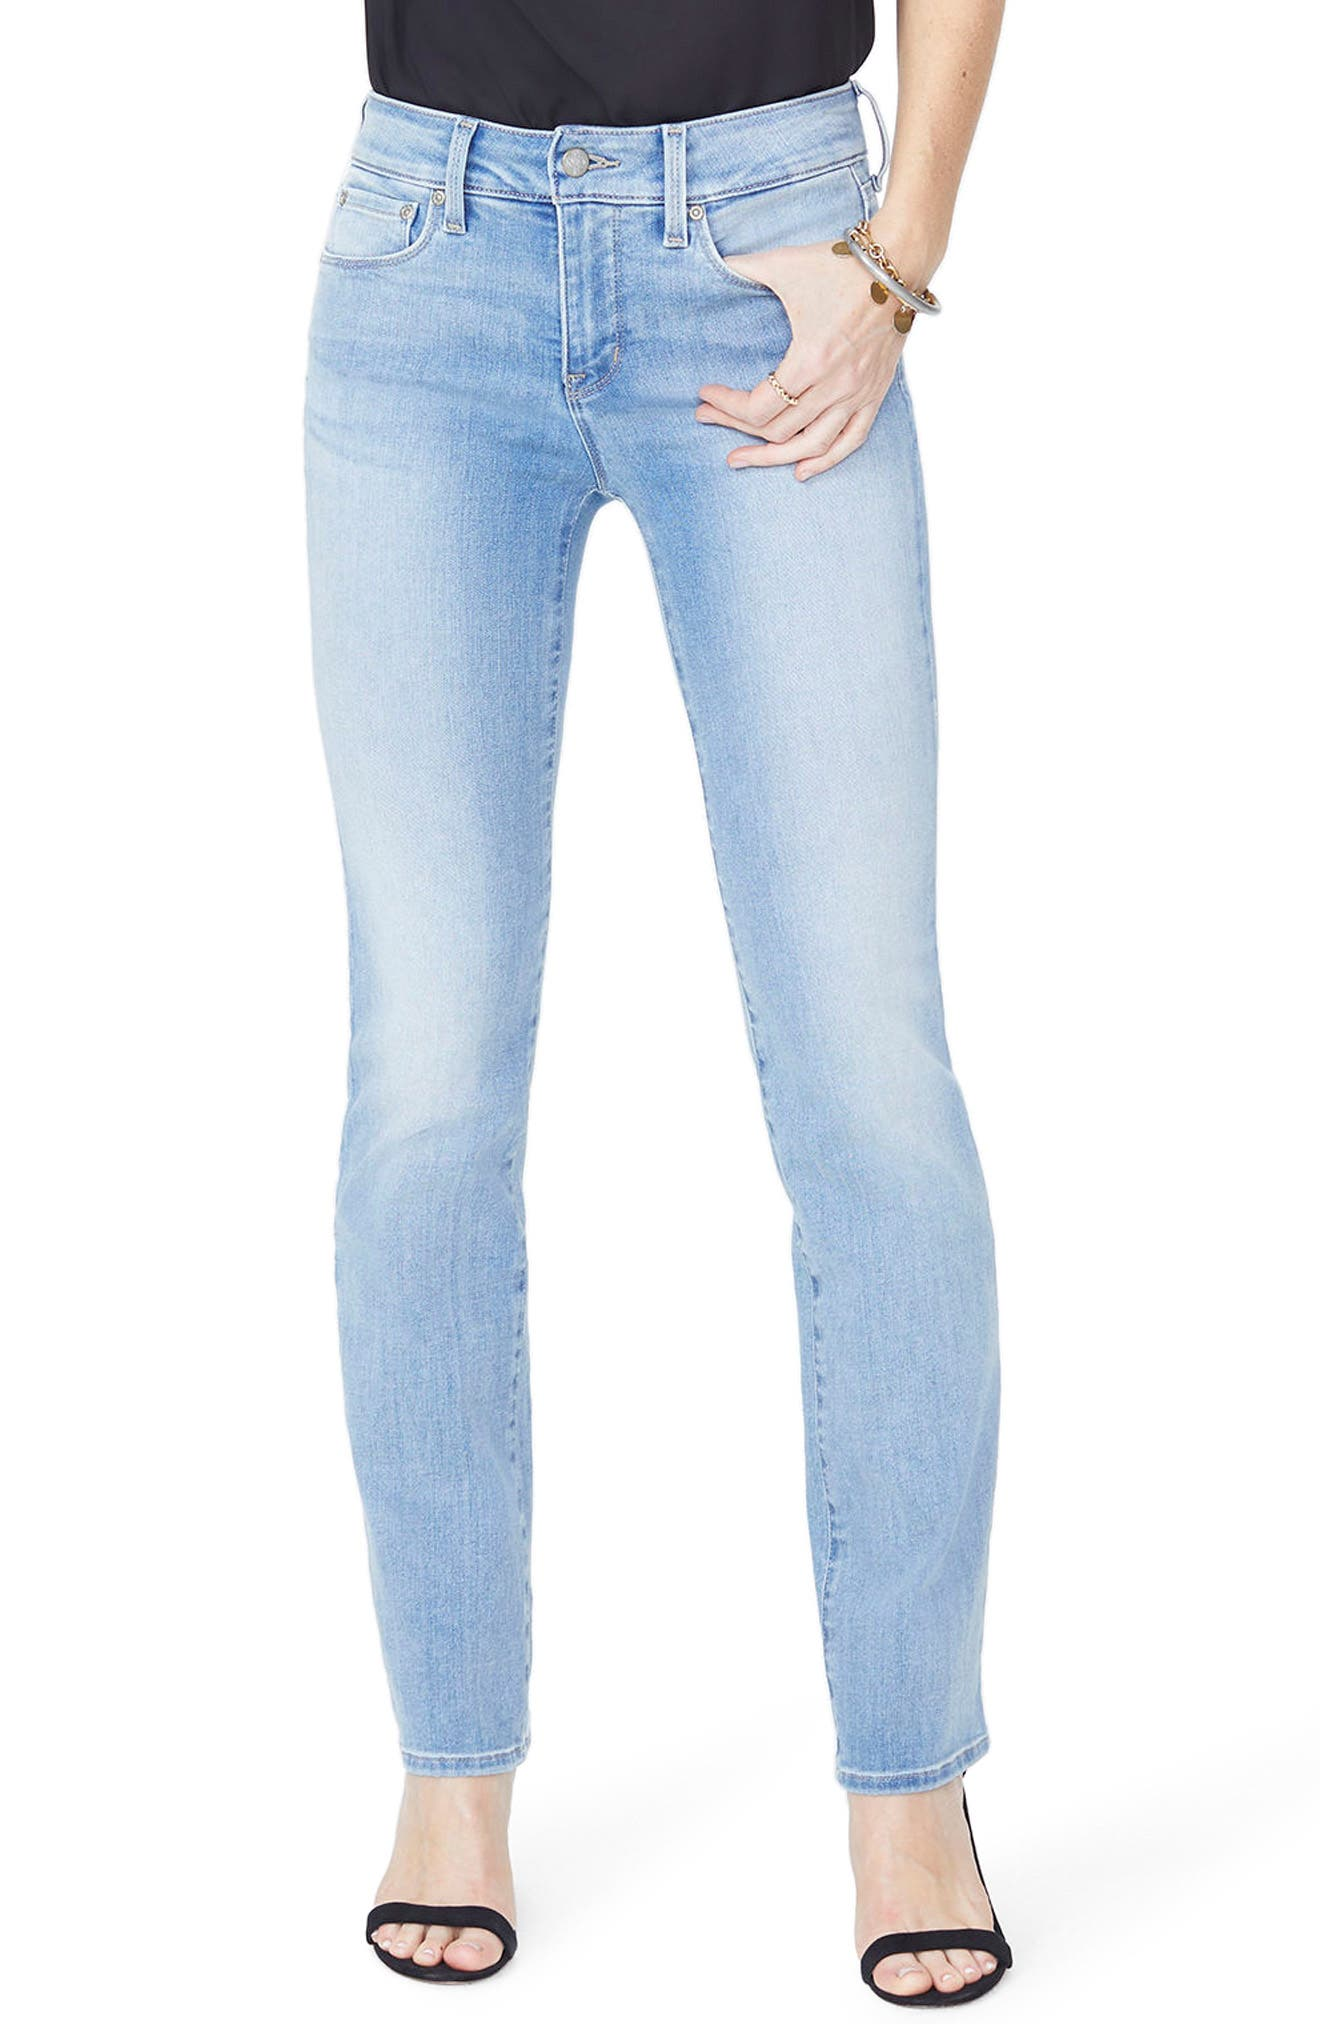 Marilyn High Waist Stretch Straight Leg Jeans,                             Main thumbnail 1, color,                             DREAMSTATE